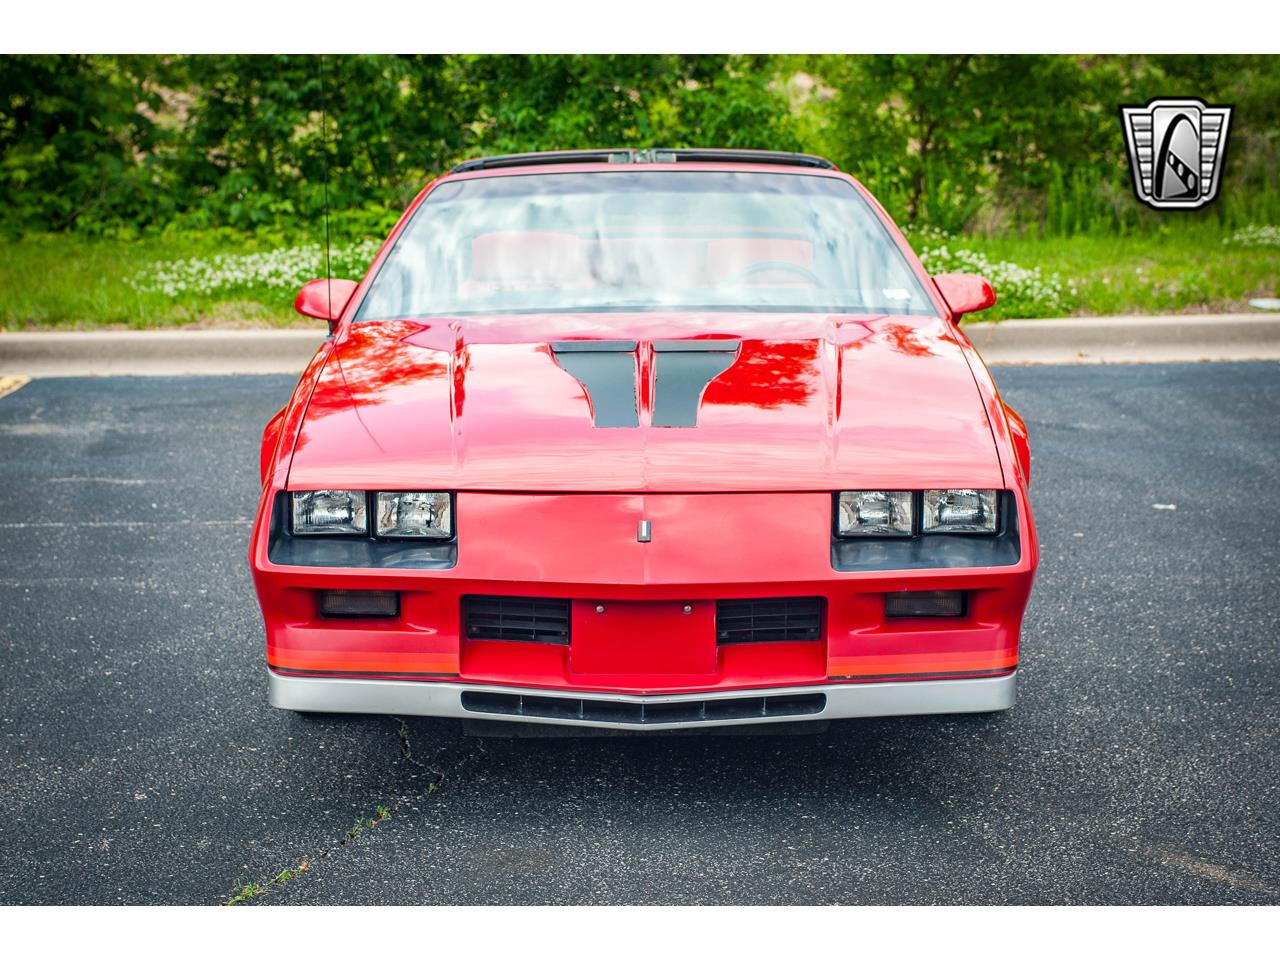 Large Picture of 1984 Chevrolet Camaro located in Illinois - $9,500.00 - QB9Y